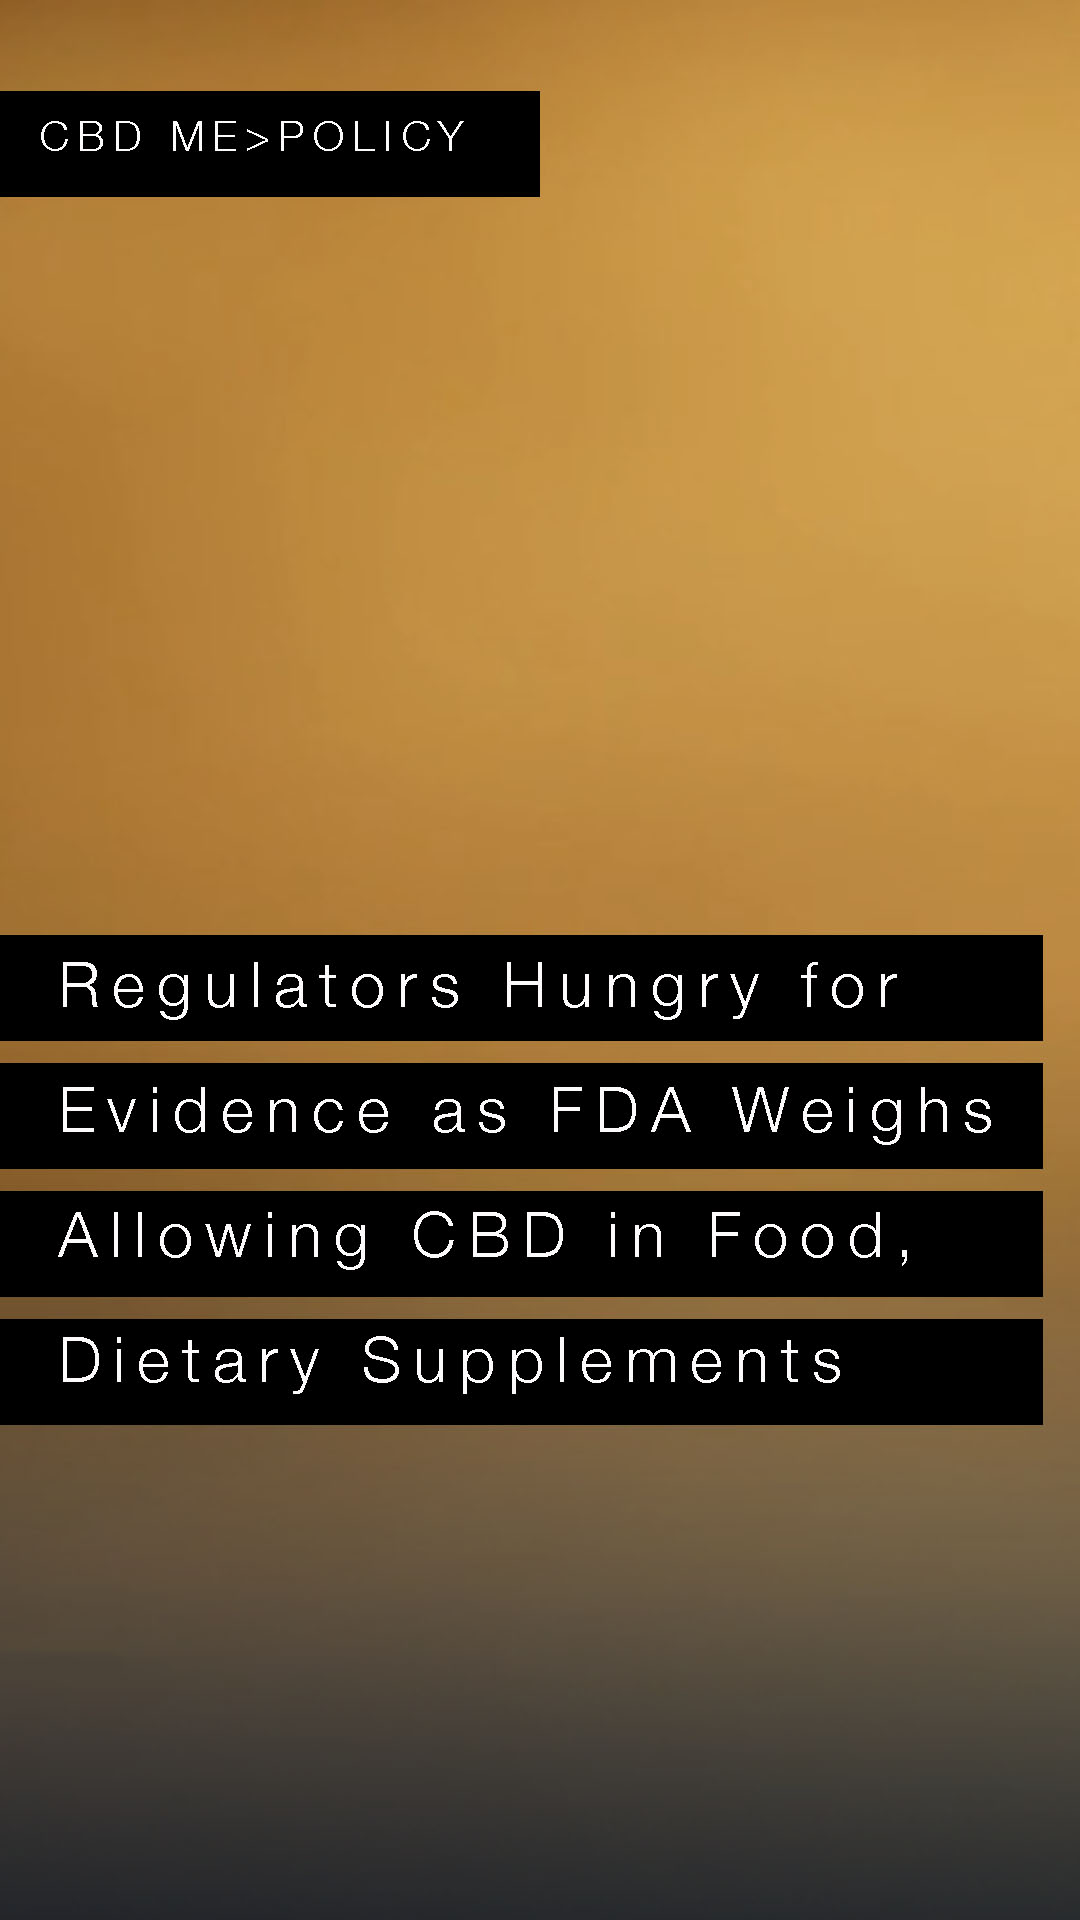 Regulators hungry for evidence as FDA weighs allowing CBD in food, dietary supplements | CNBC